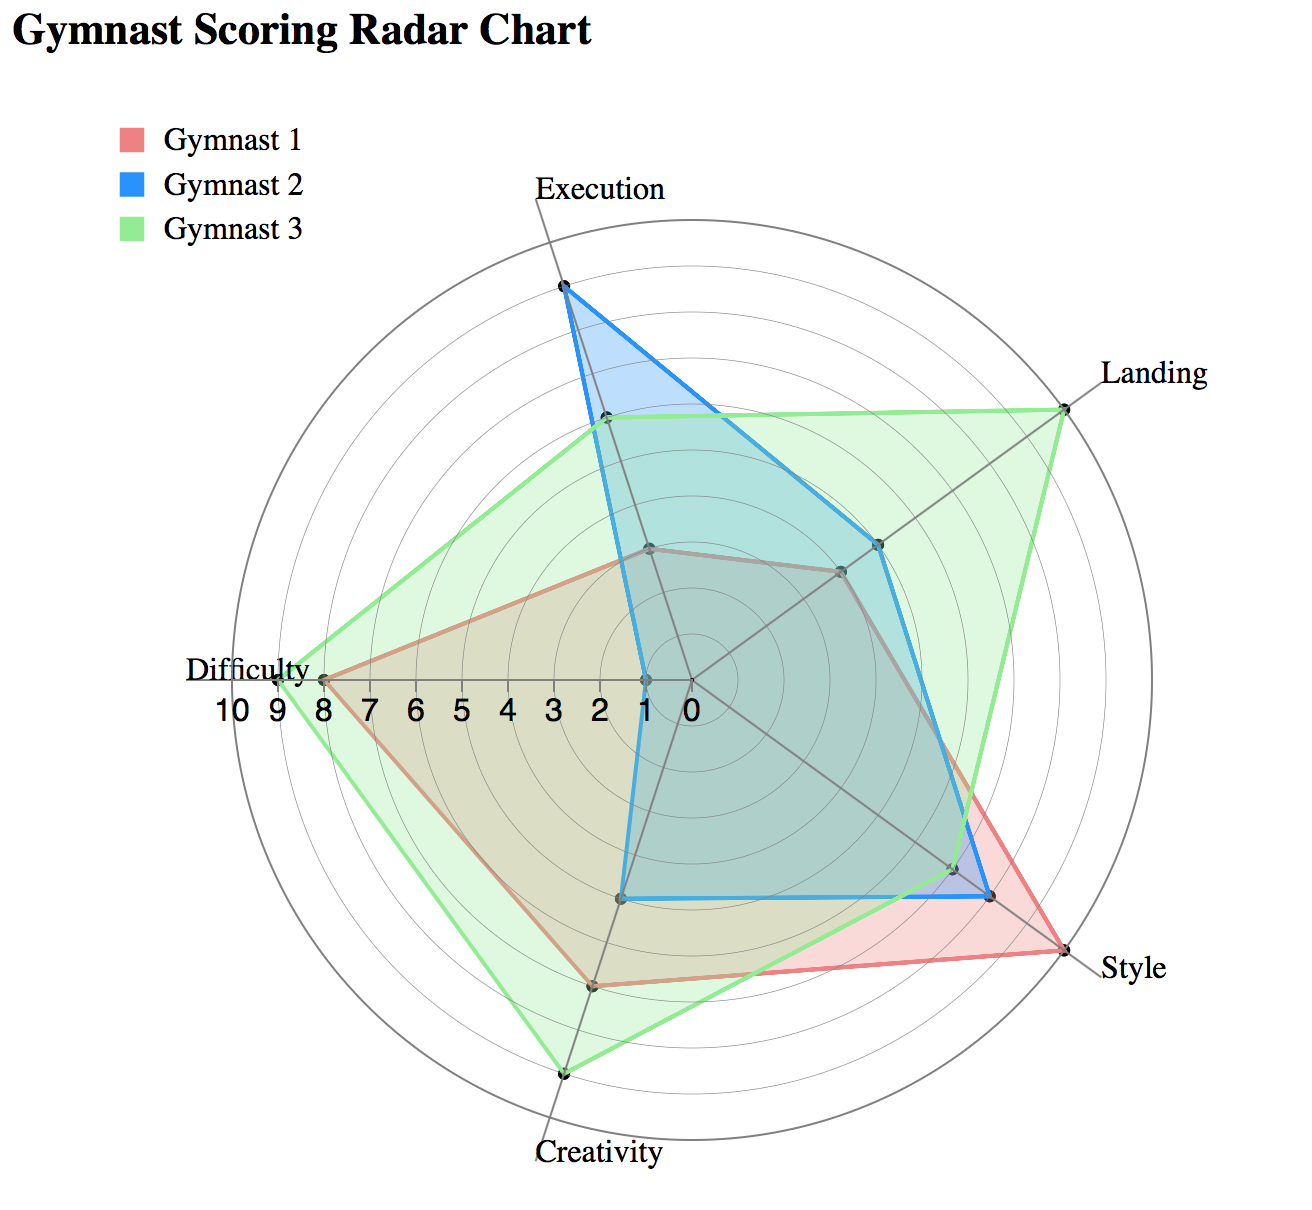 A radar chart comparing scores for different gymnasts